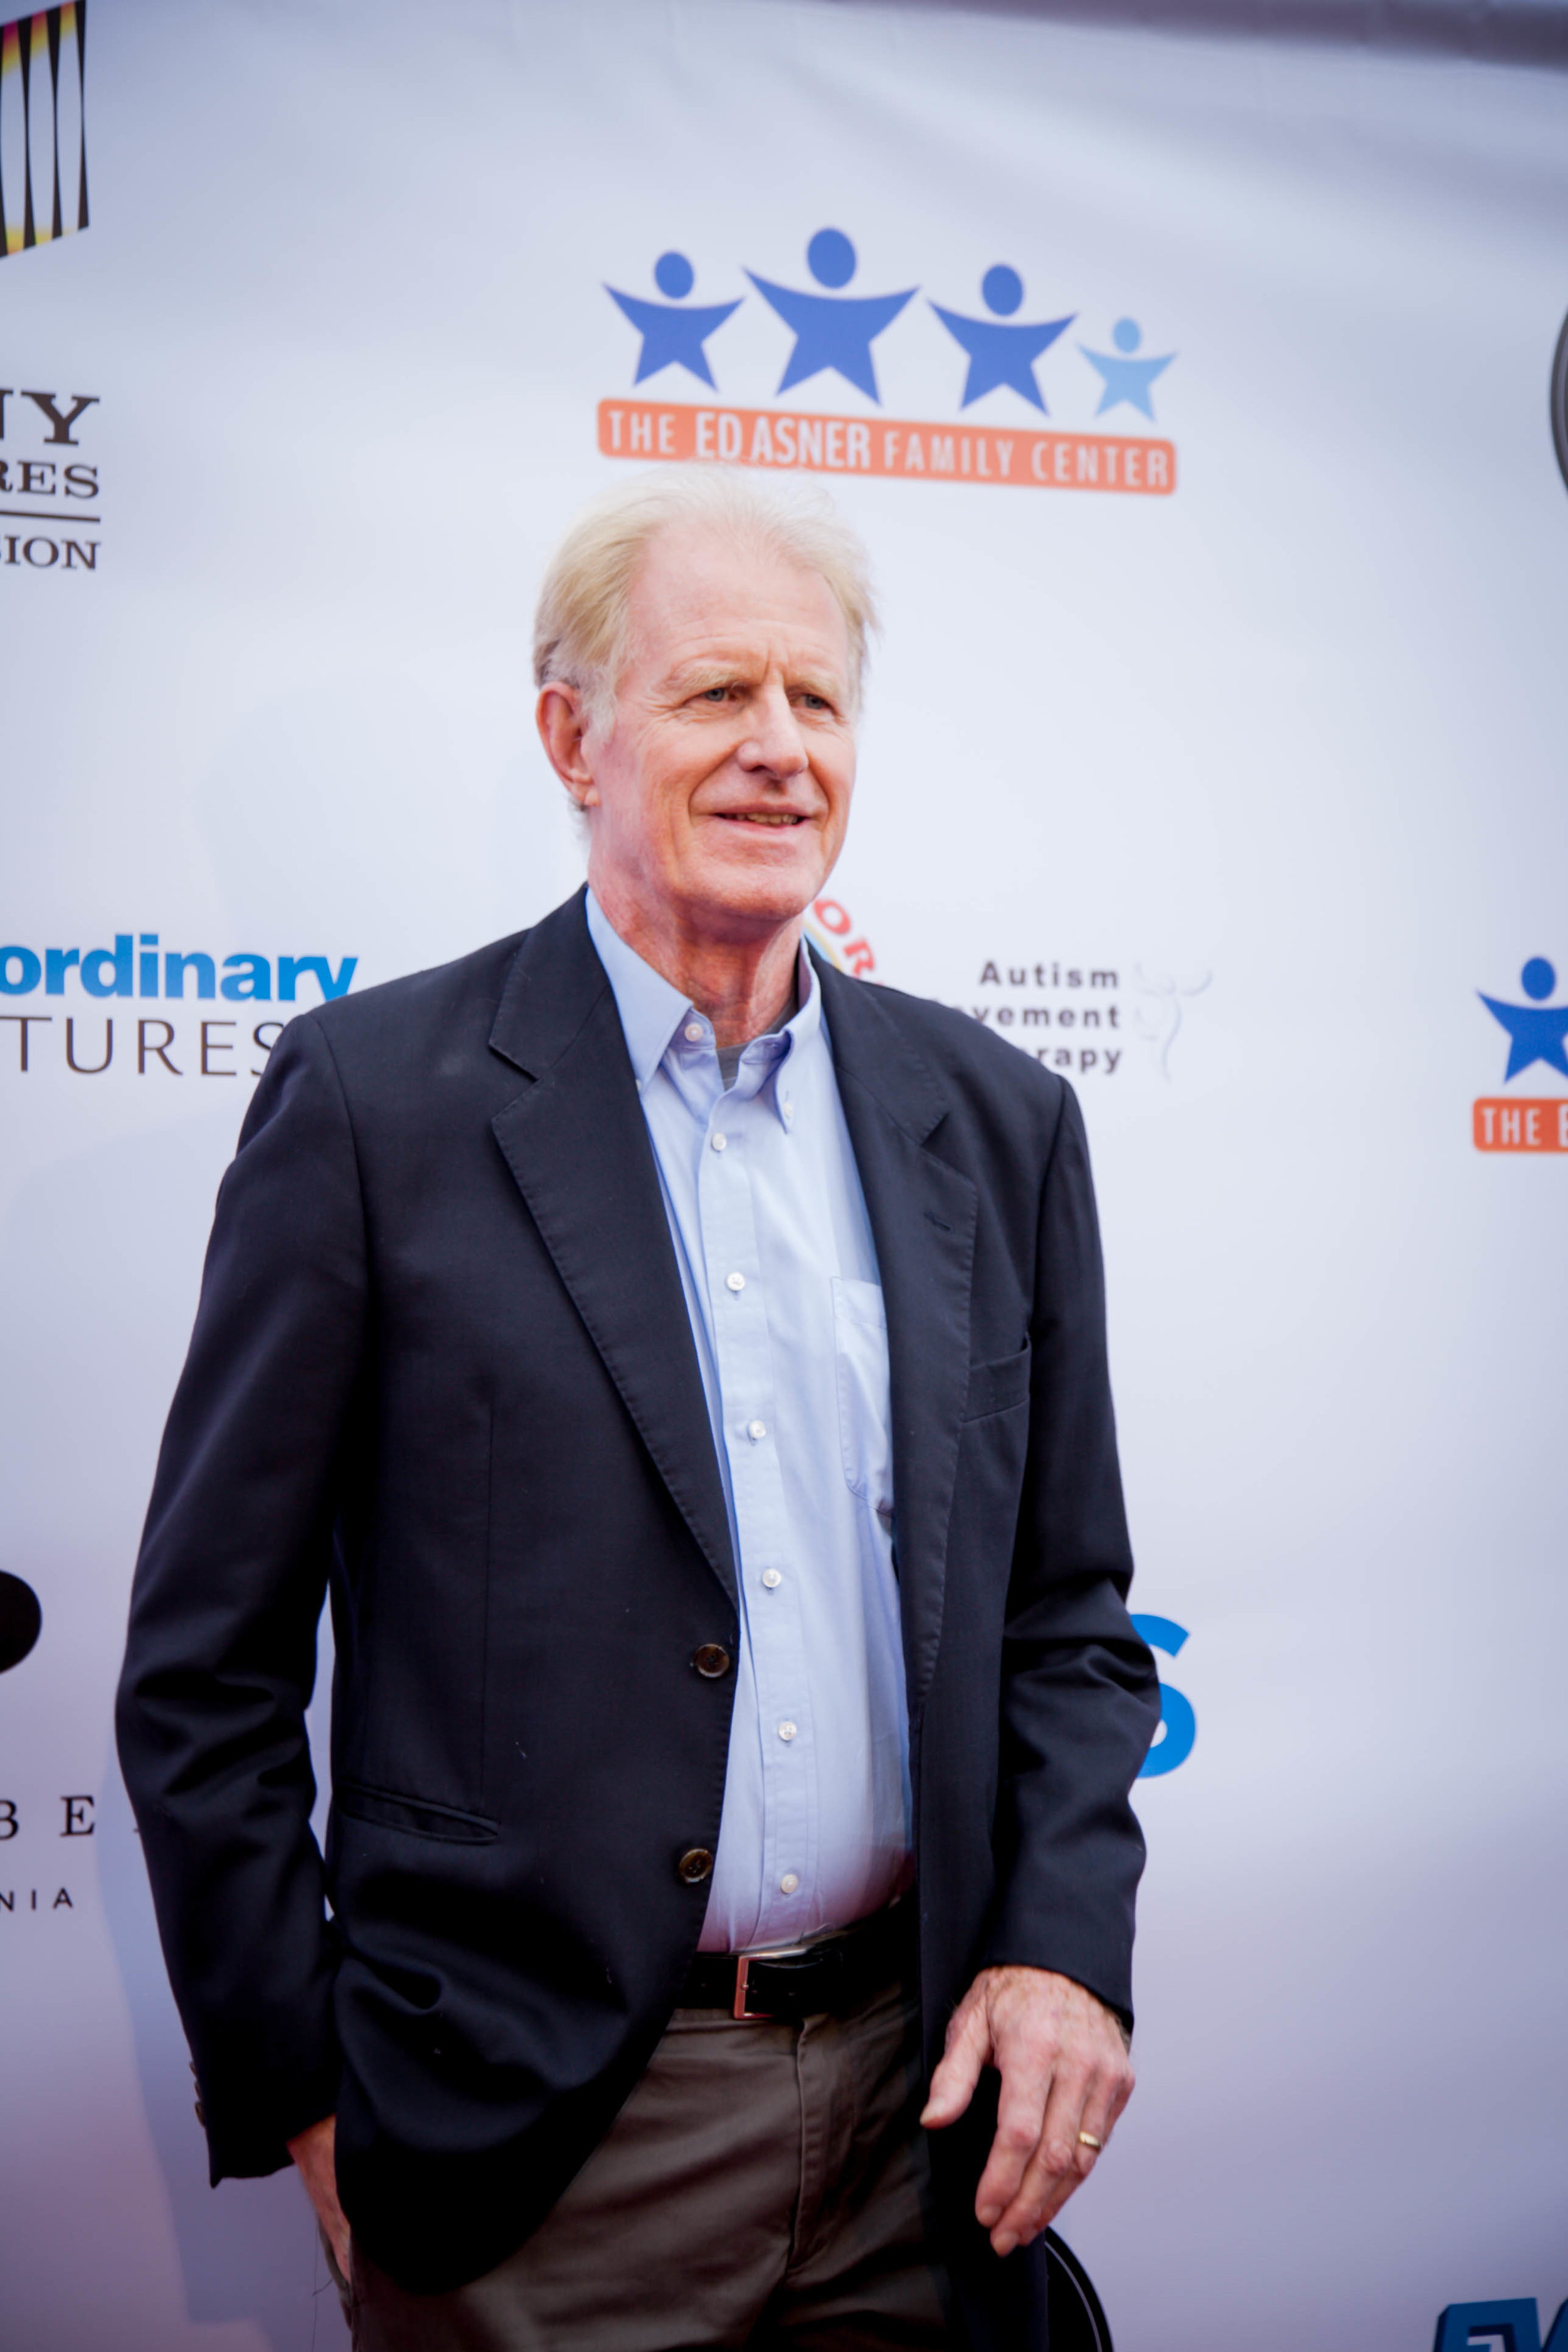 Ed Begley, Jr. Photo by Erin Poole for Average Socialite.